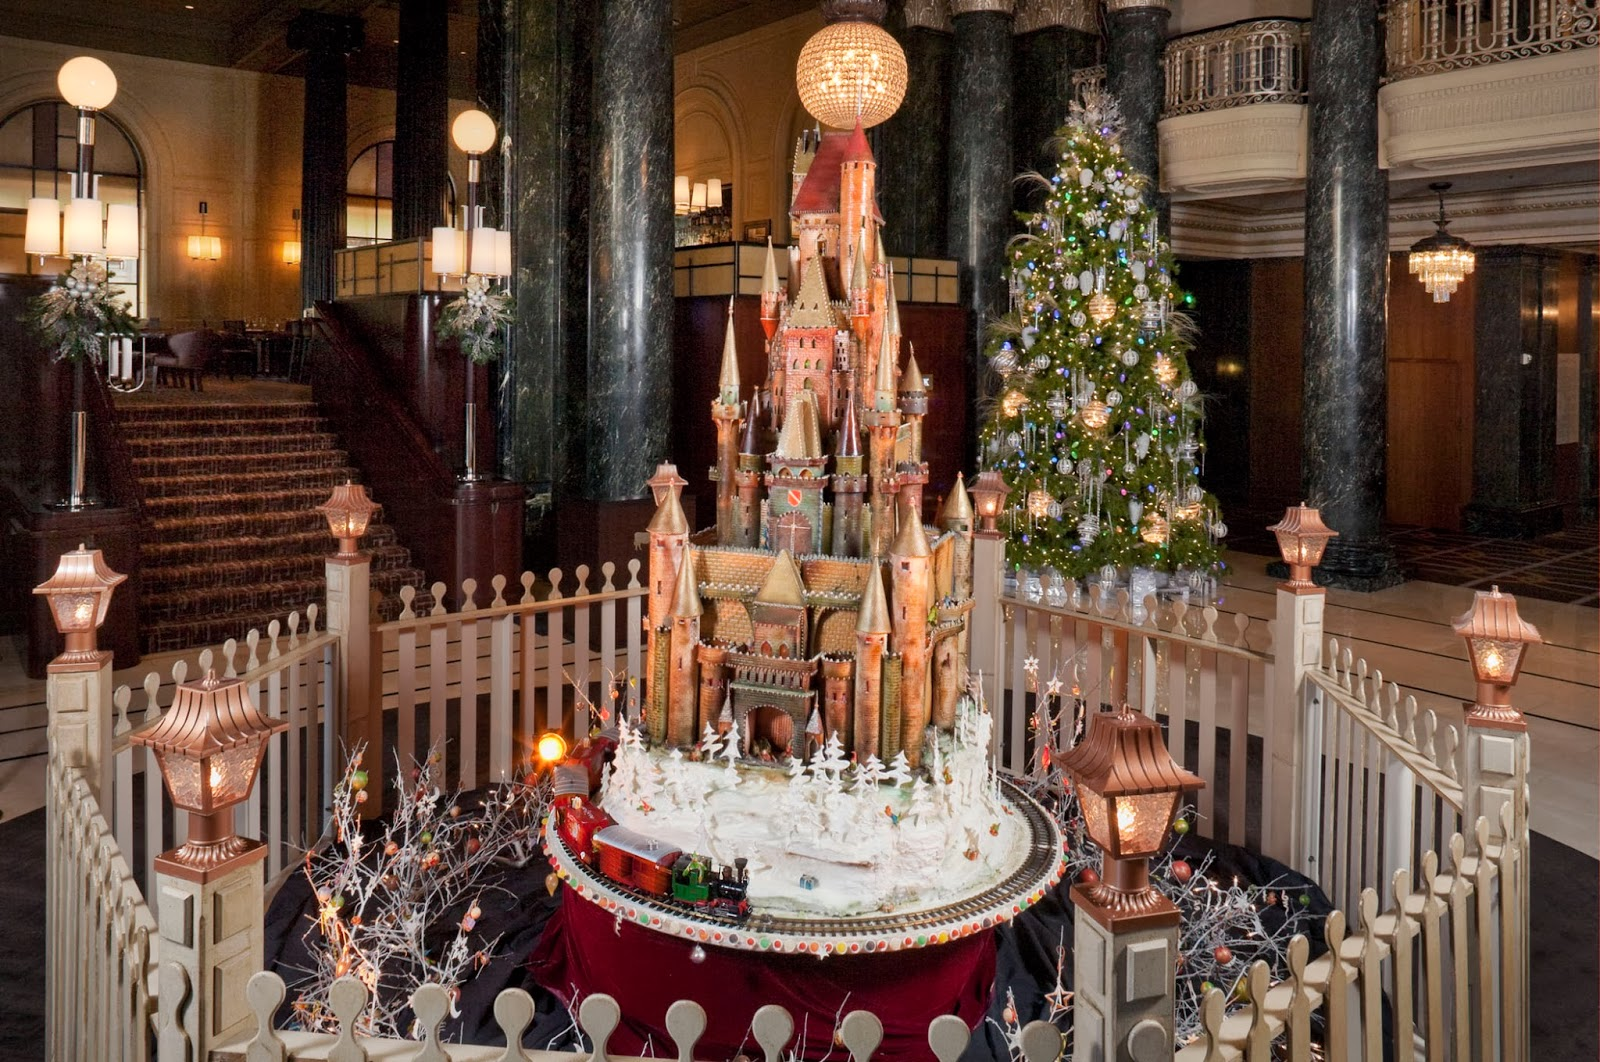 Christmas Decorated House San Francisco : Frisco kids gingerbread house activities in the bay area